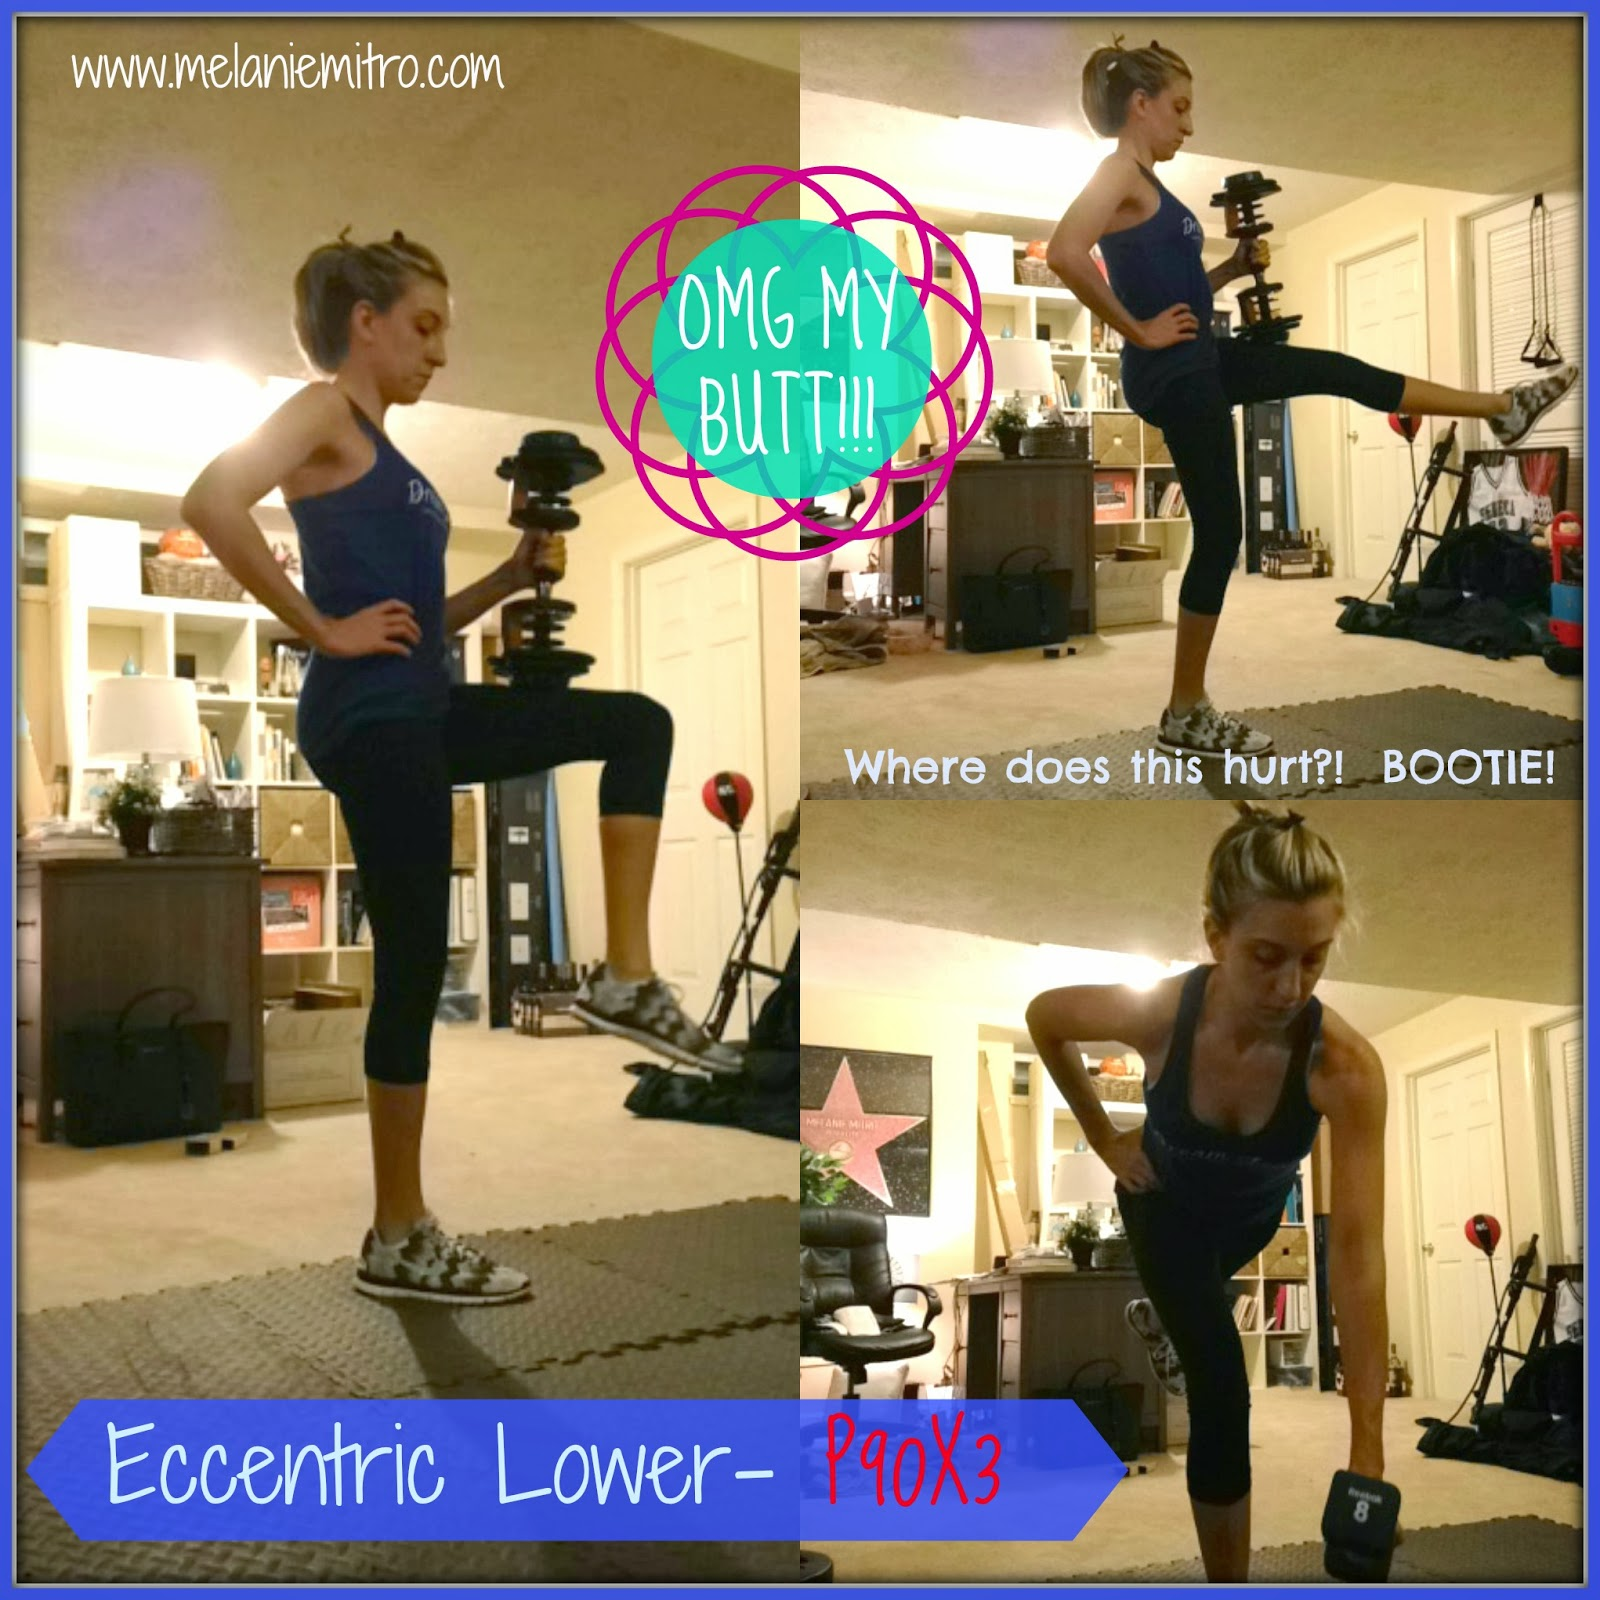 P90X3 Eccentric Lower